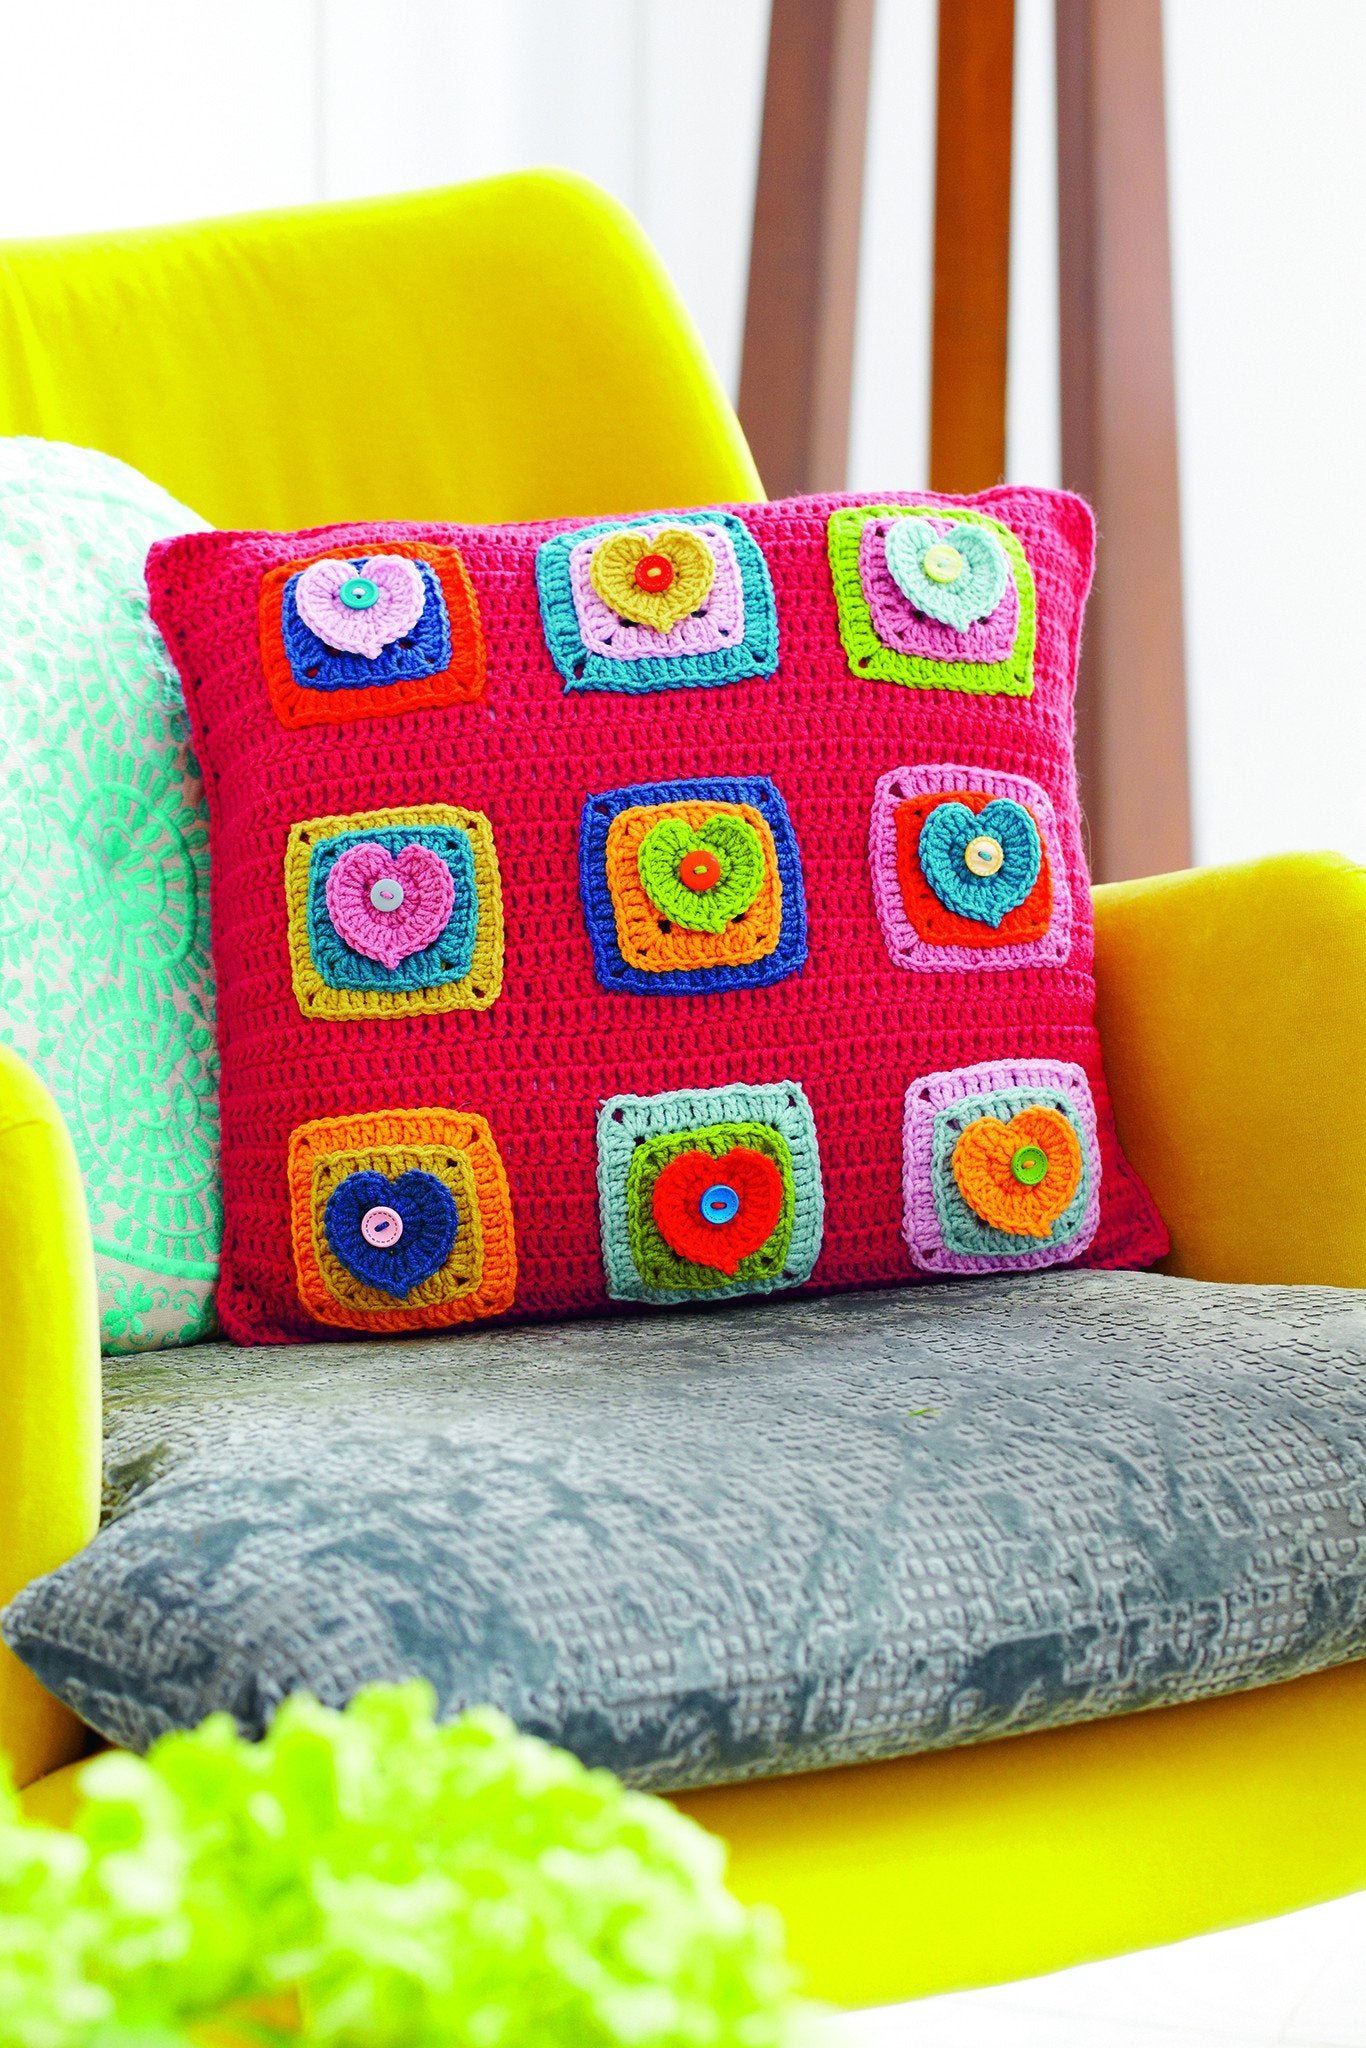 Heart cushion crochet pattern the knitting network colourful crocheted cushion with hearts bankloansurffo Gallery